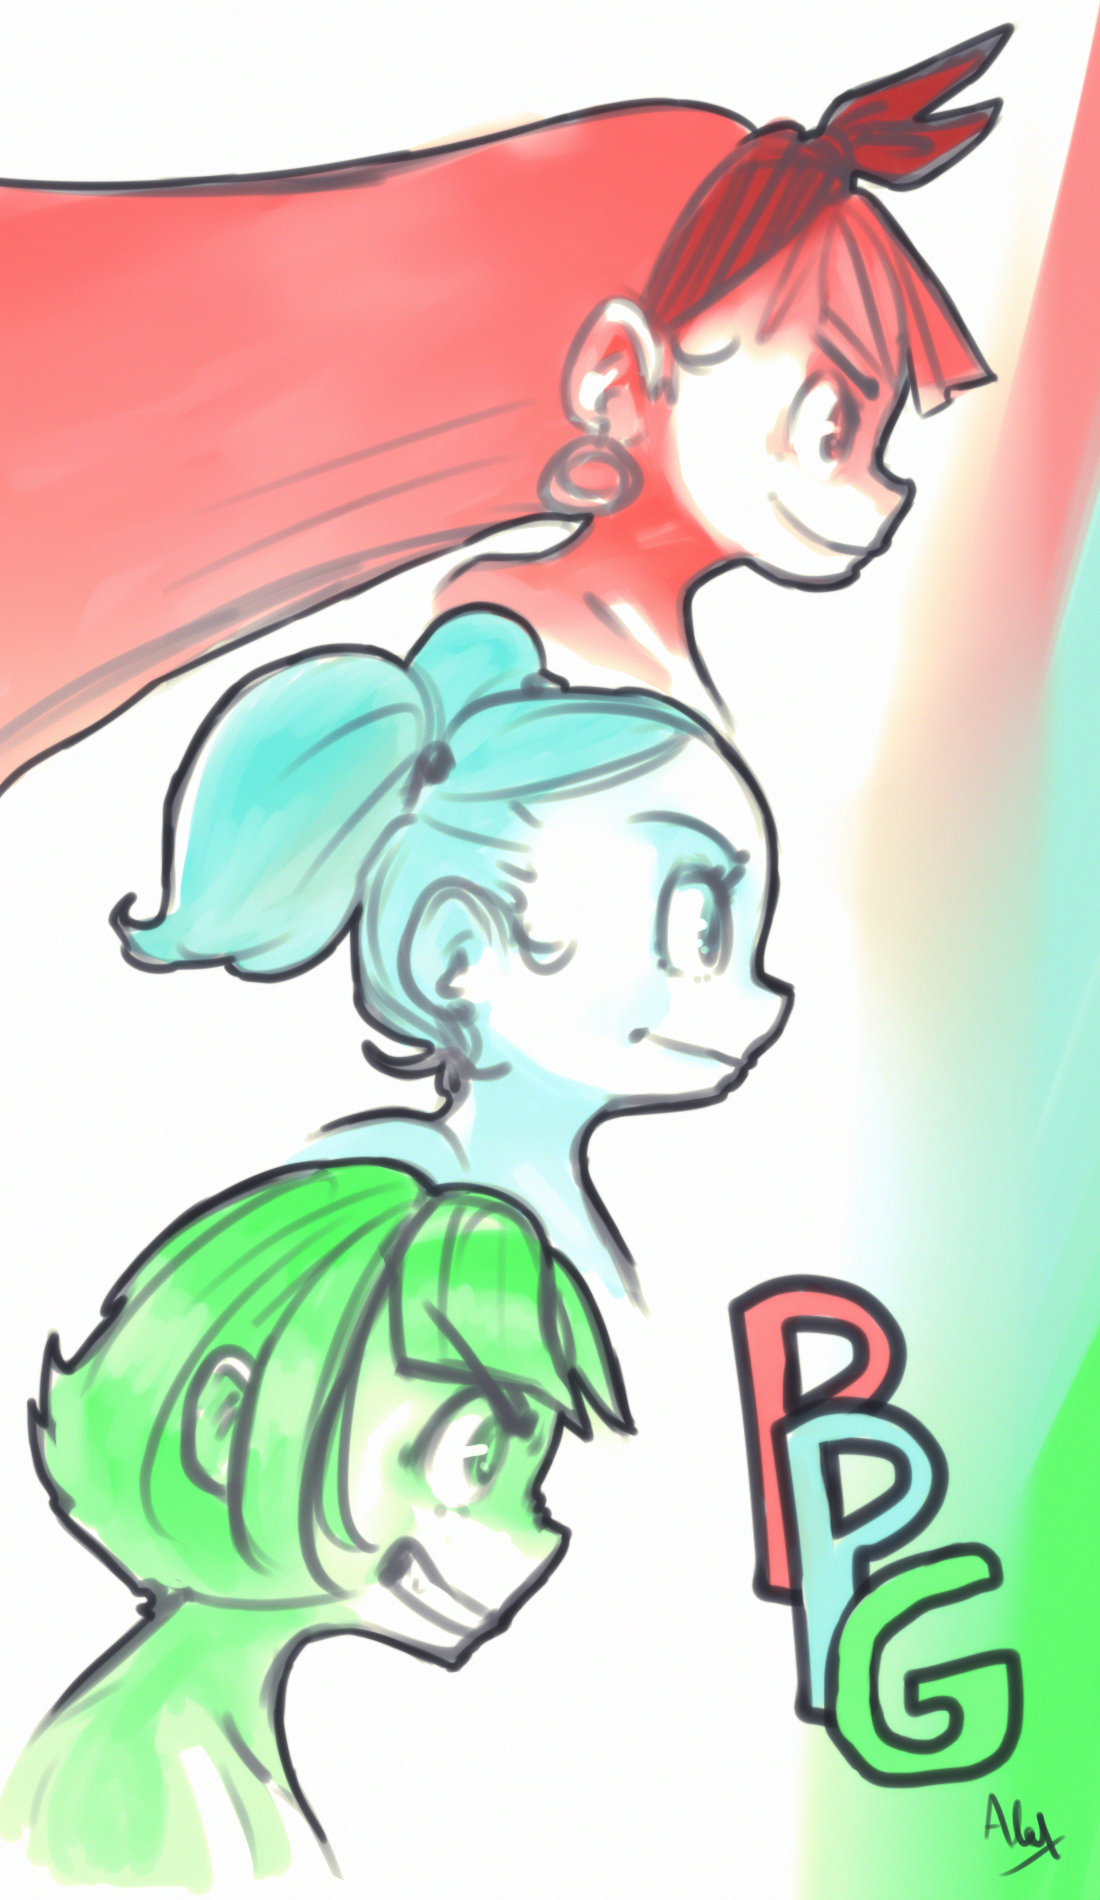 weekly doodle 2 PPG